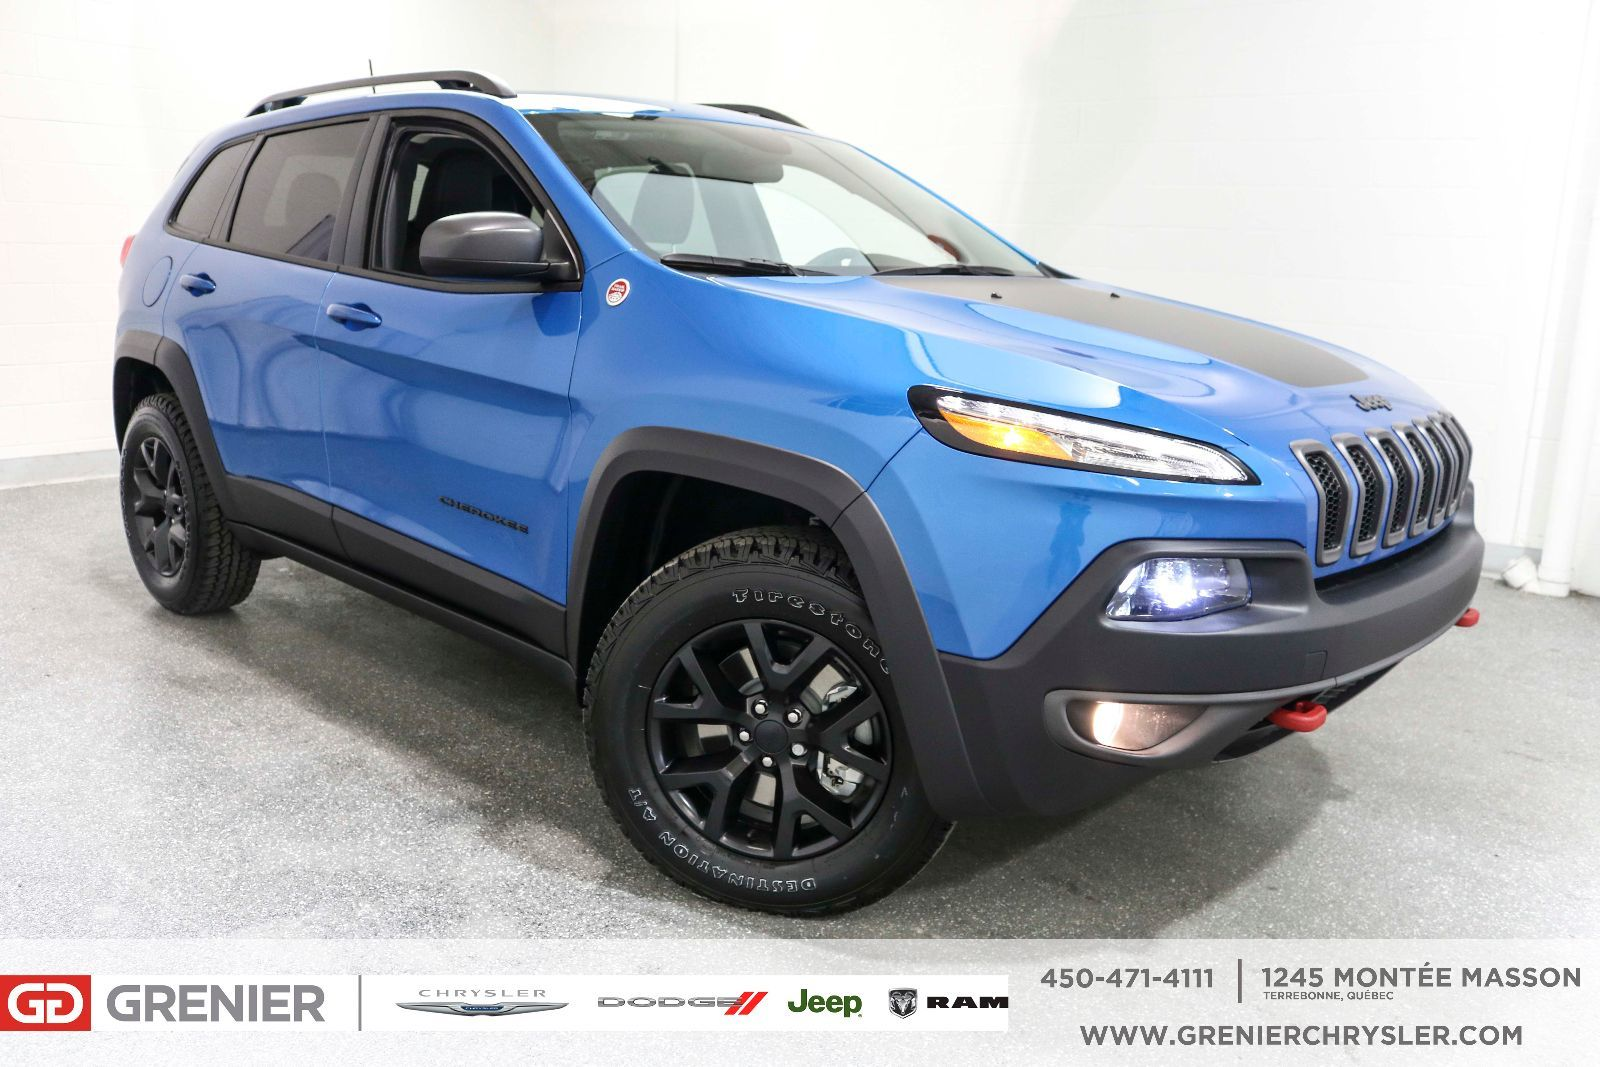 New 2018 Jeep Cherokee Trailhawk Cuir Ecran 8 4 Tactile